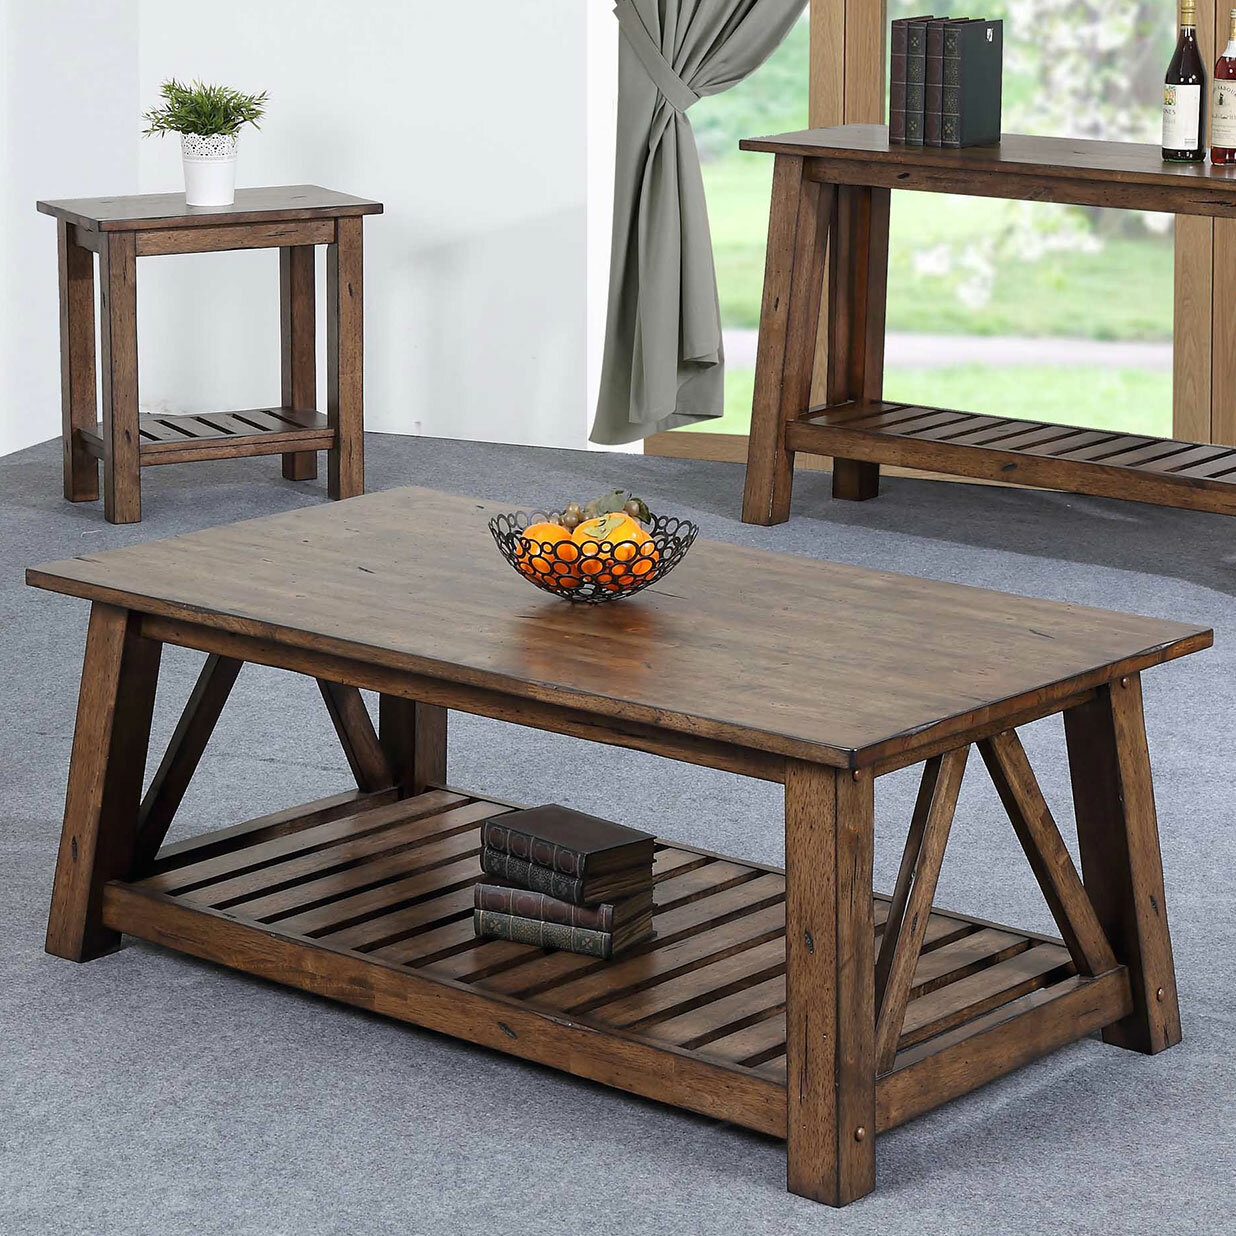 Rosecliff Heights Rutledge Solid Wood Coffee Table With Storage Reviews Wayfair